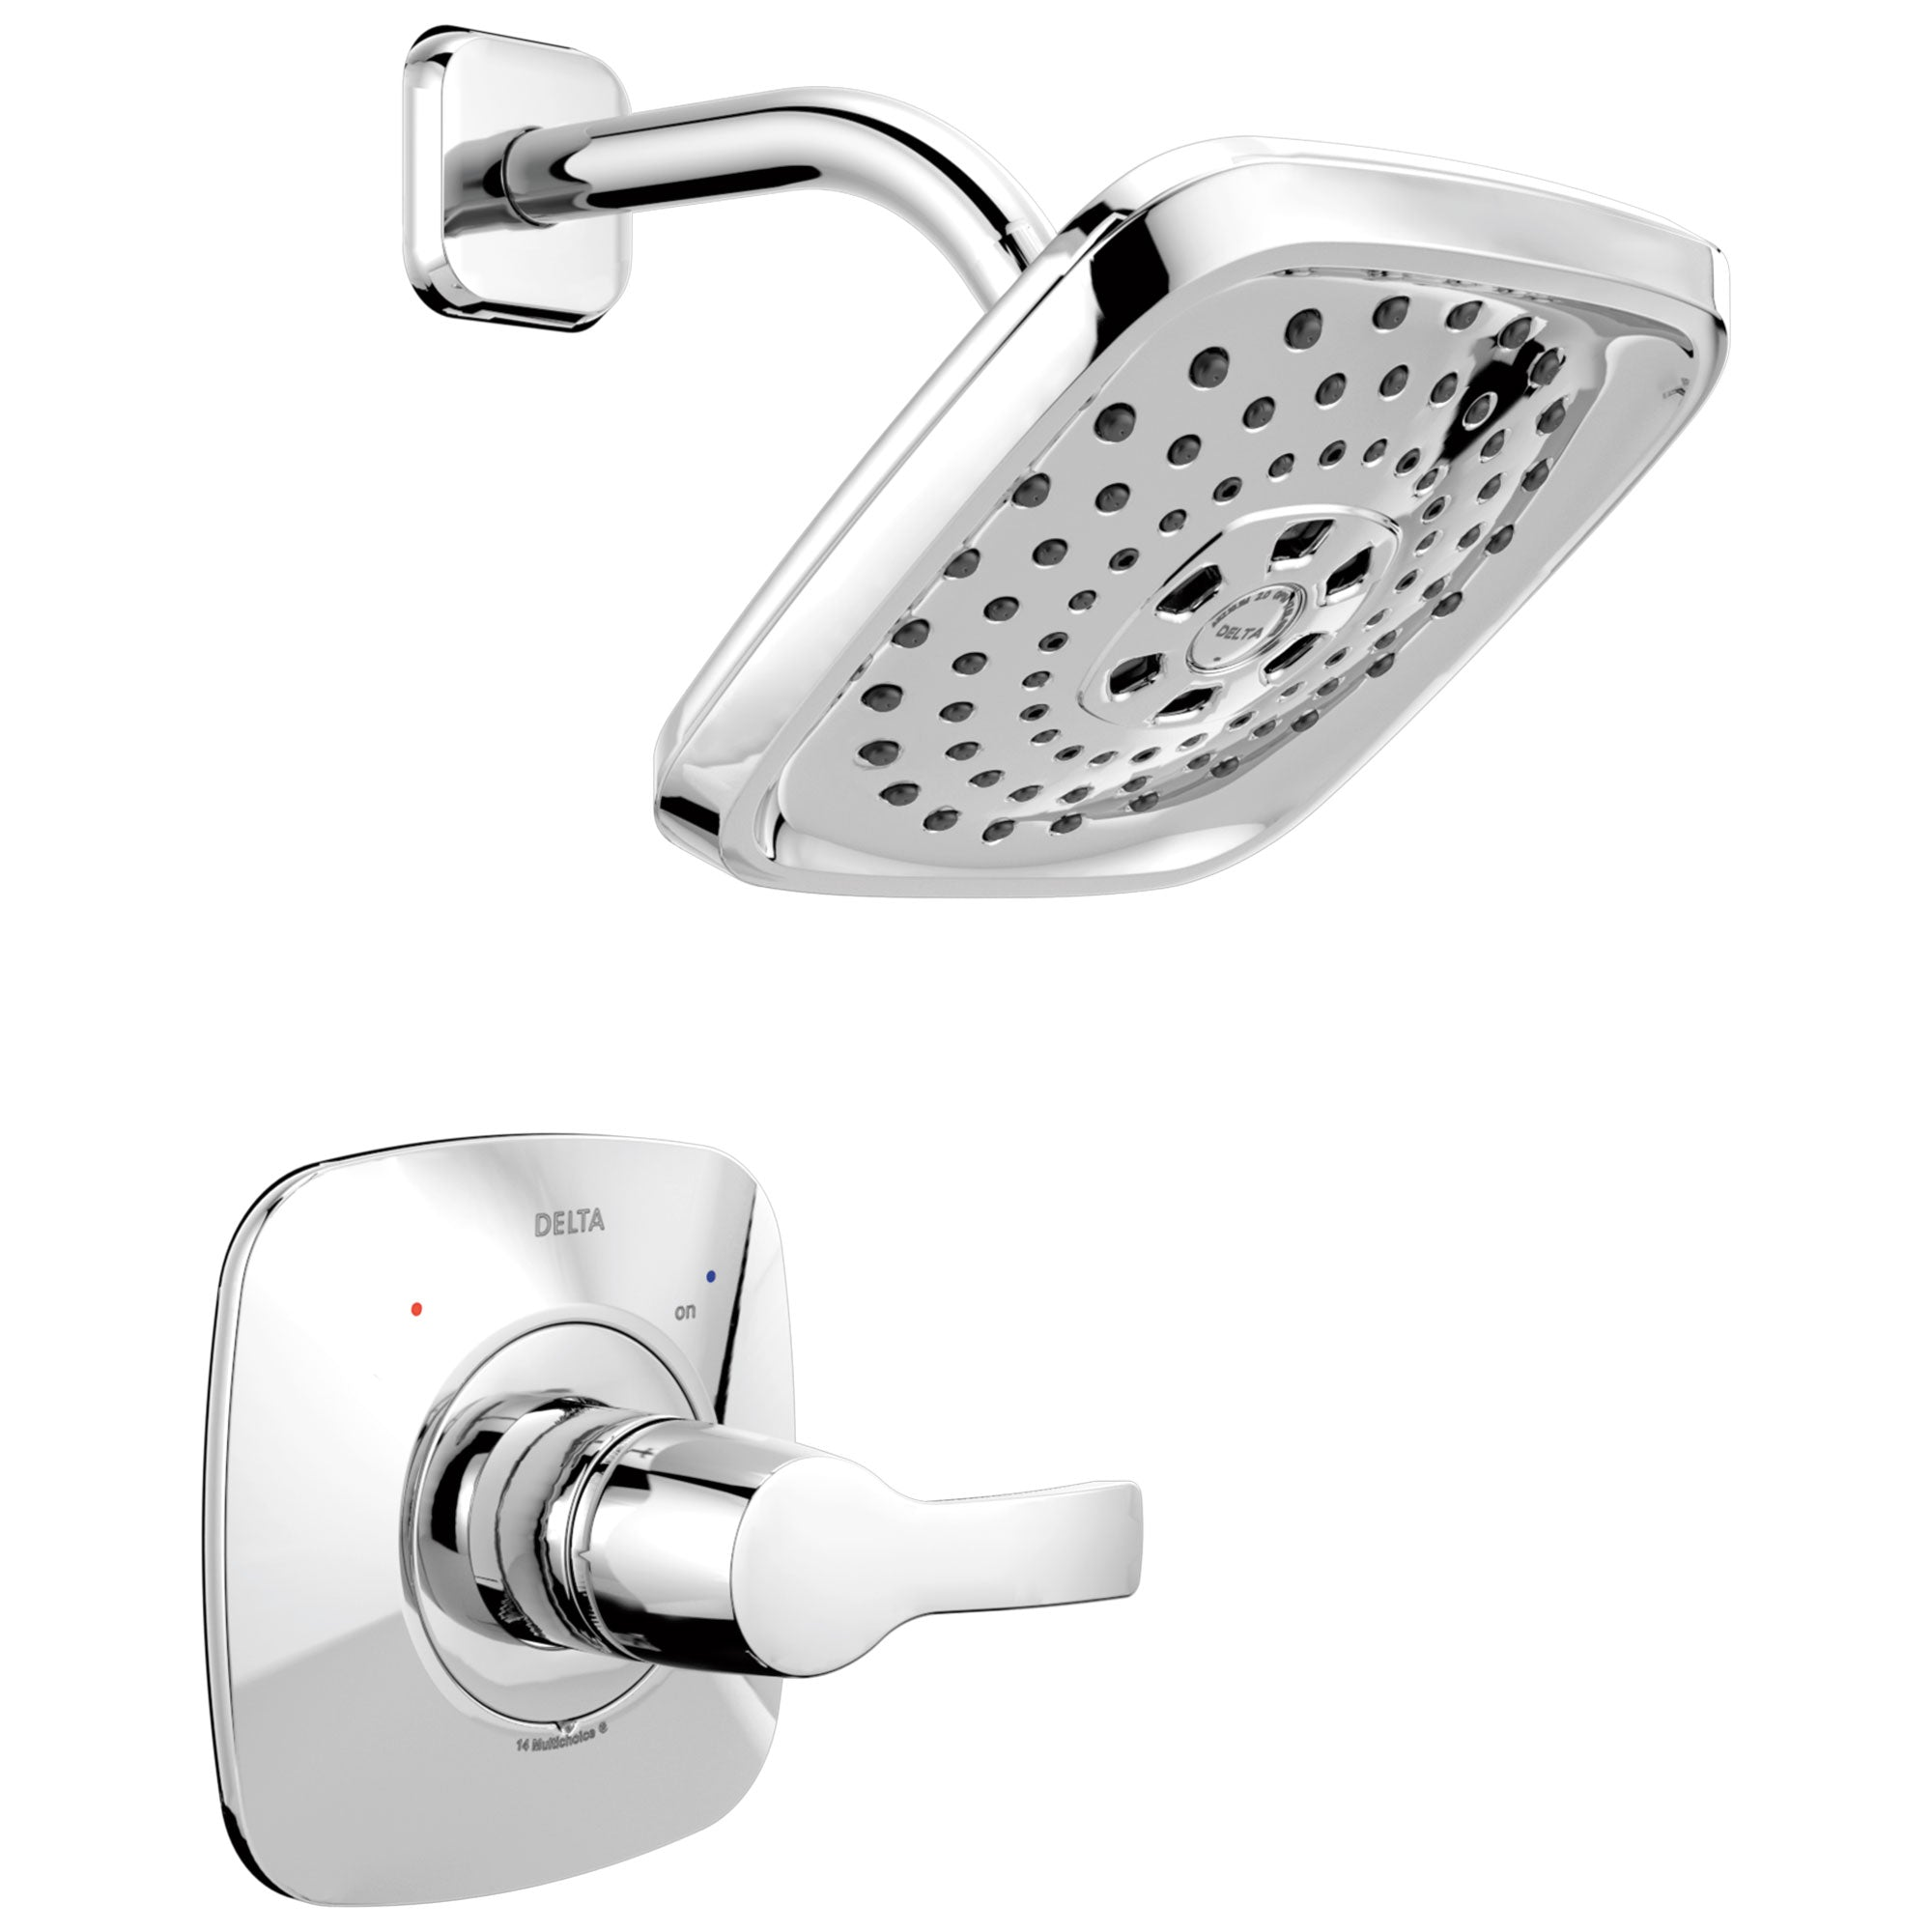 Delta Tesla H2Okinetic 1-Handle Shower Faucet in Chrome Includes Rough-in Valve with Stops D2589V